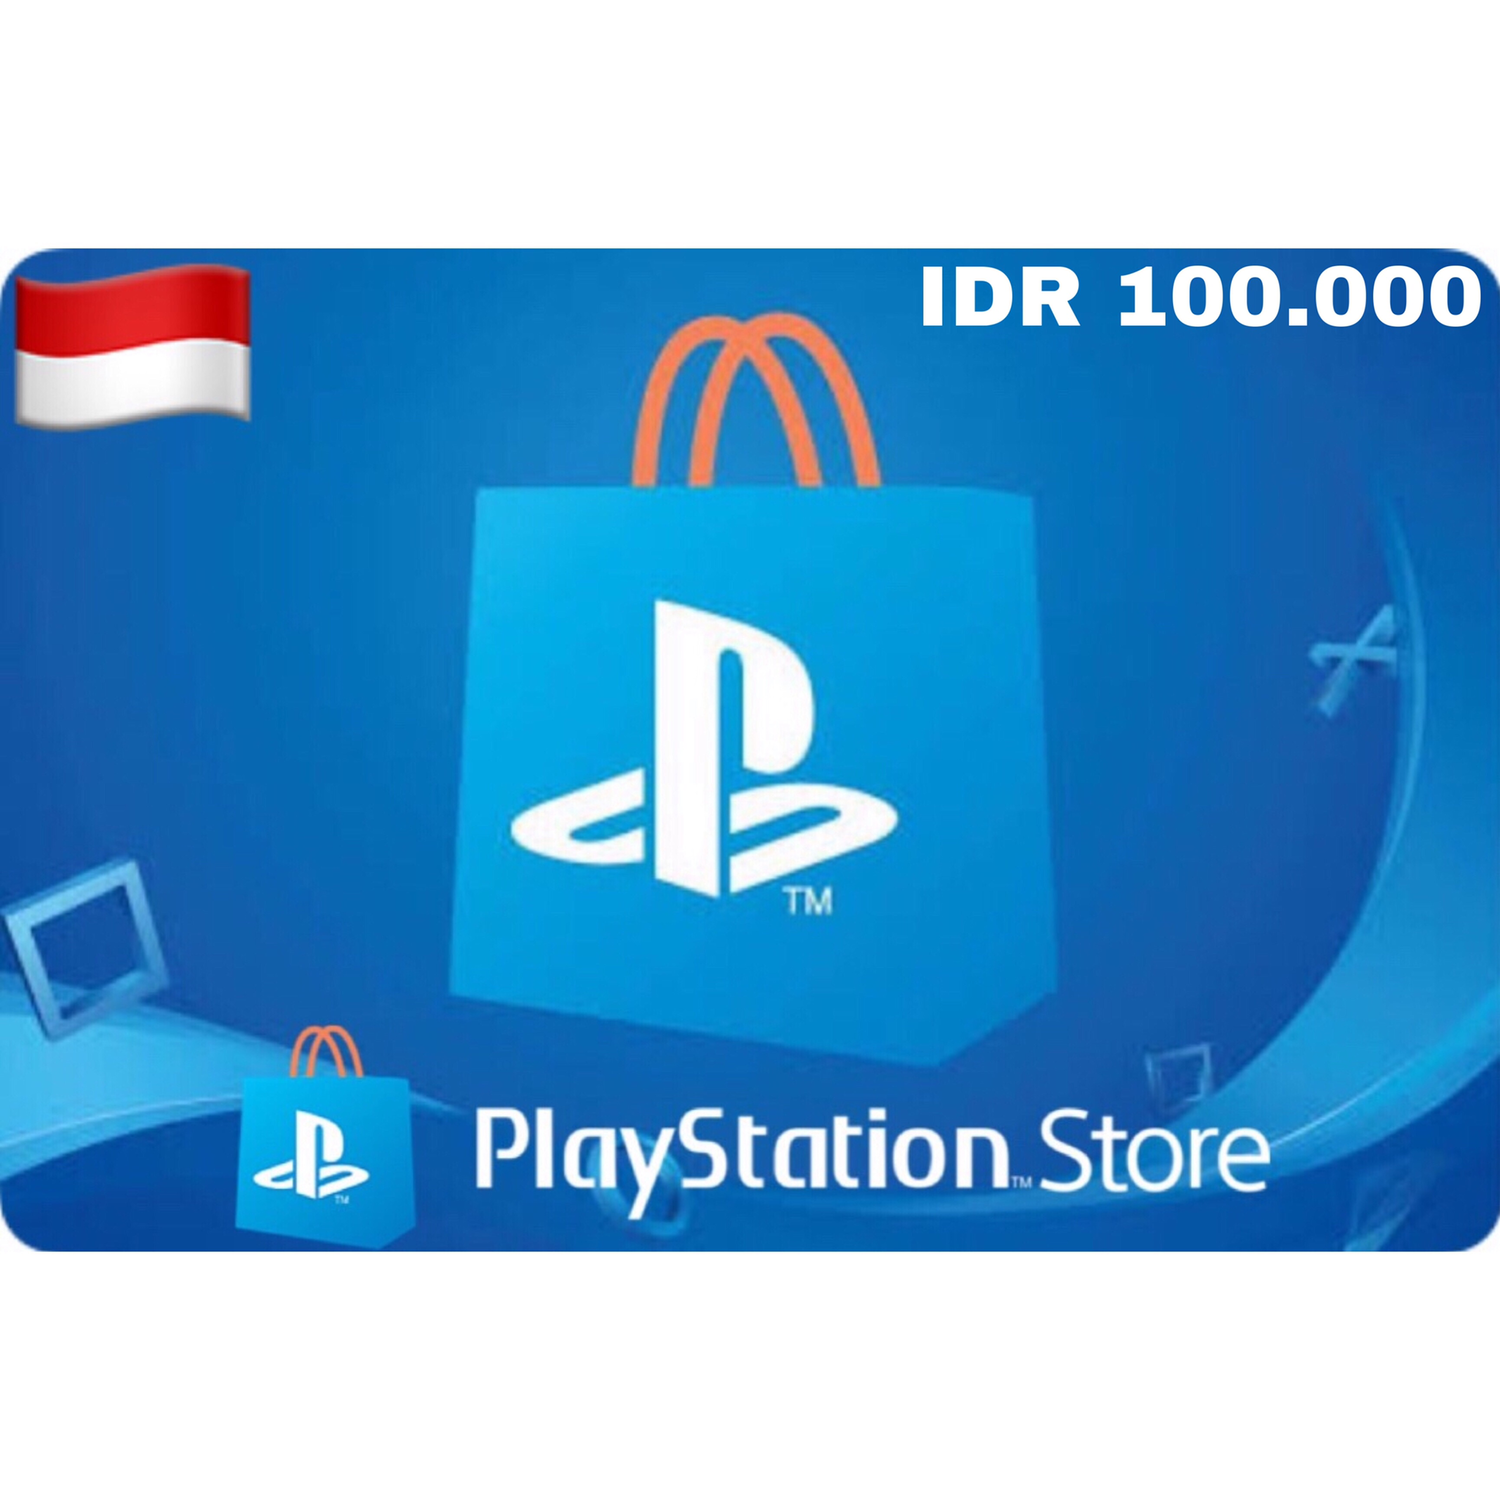 PSN Card - Playstation Network Indonesia / Asia IDR 100.000